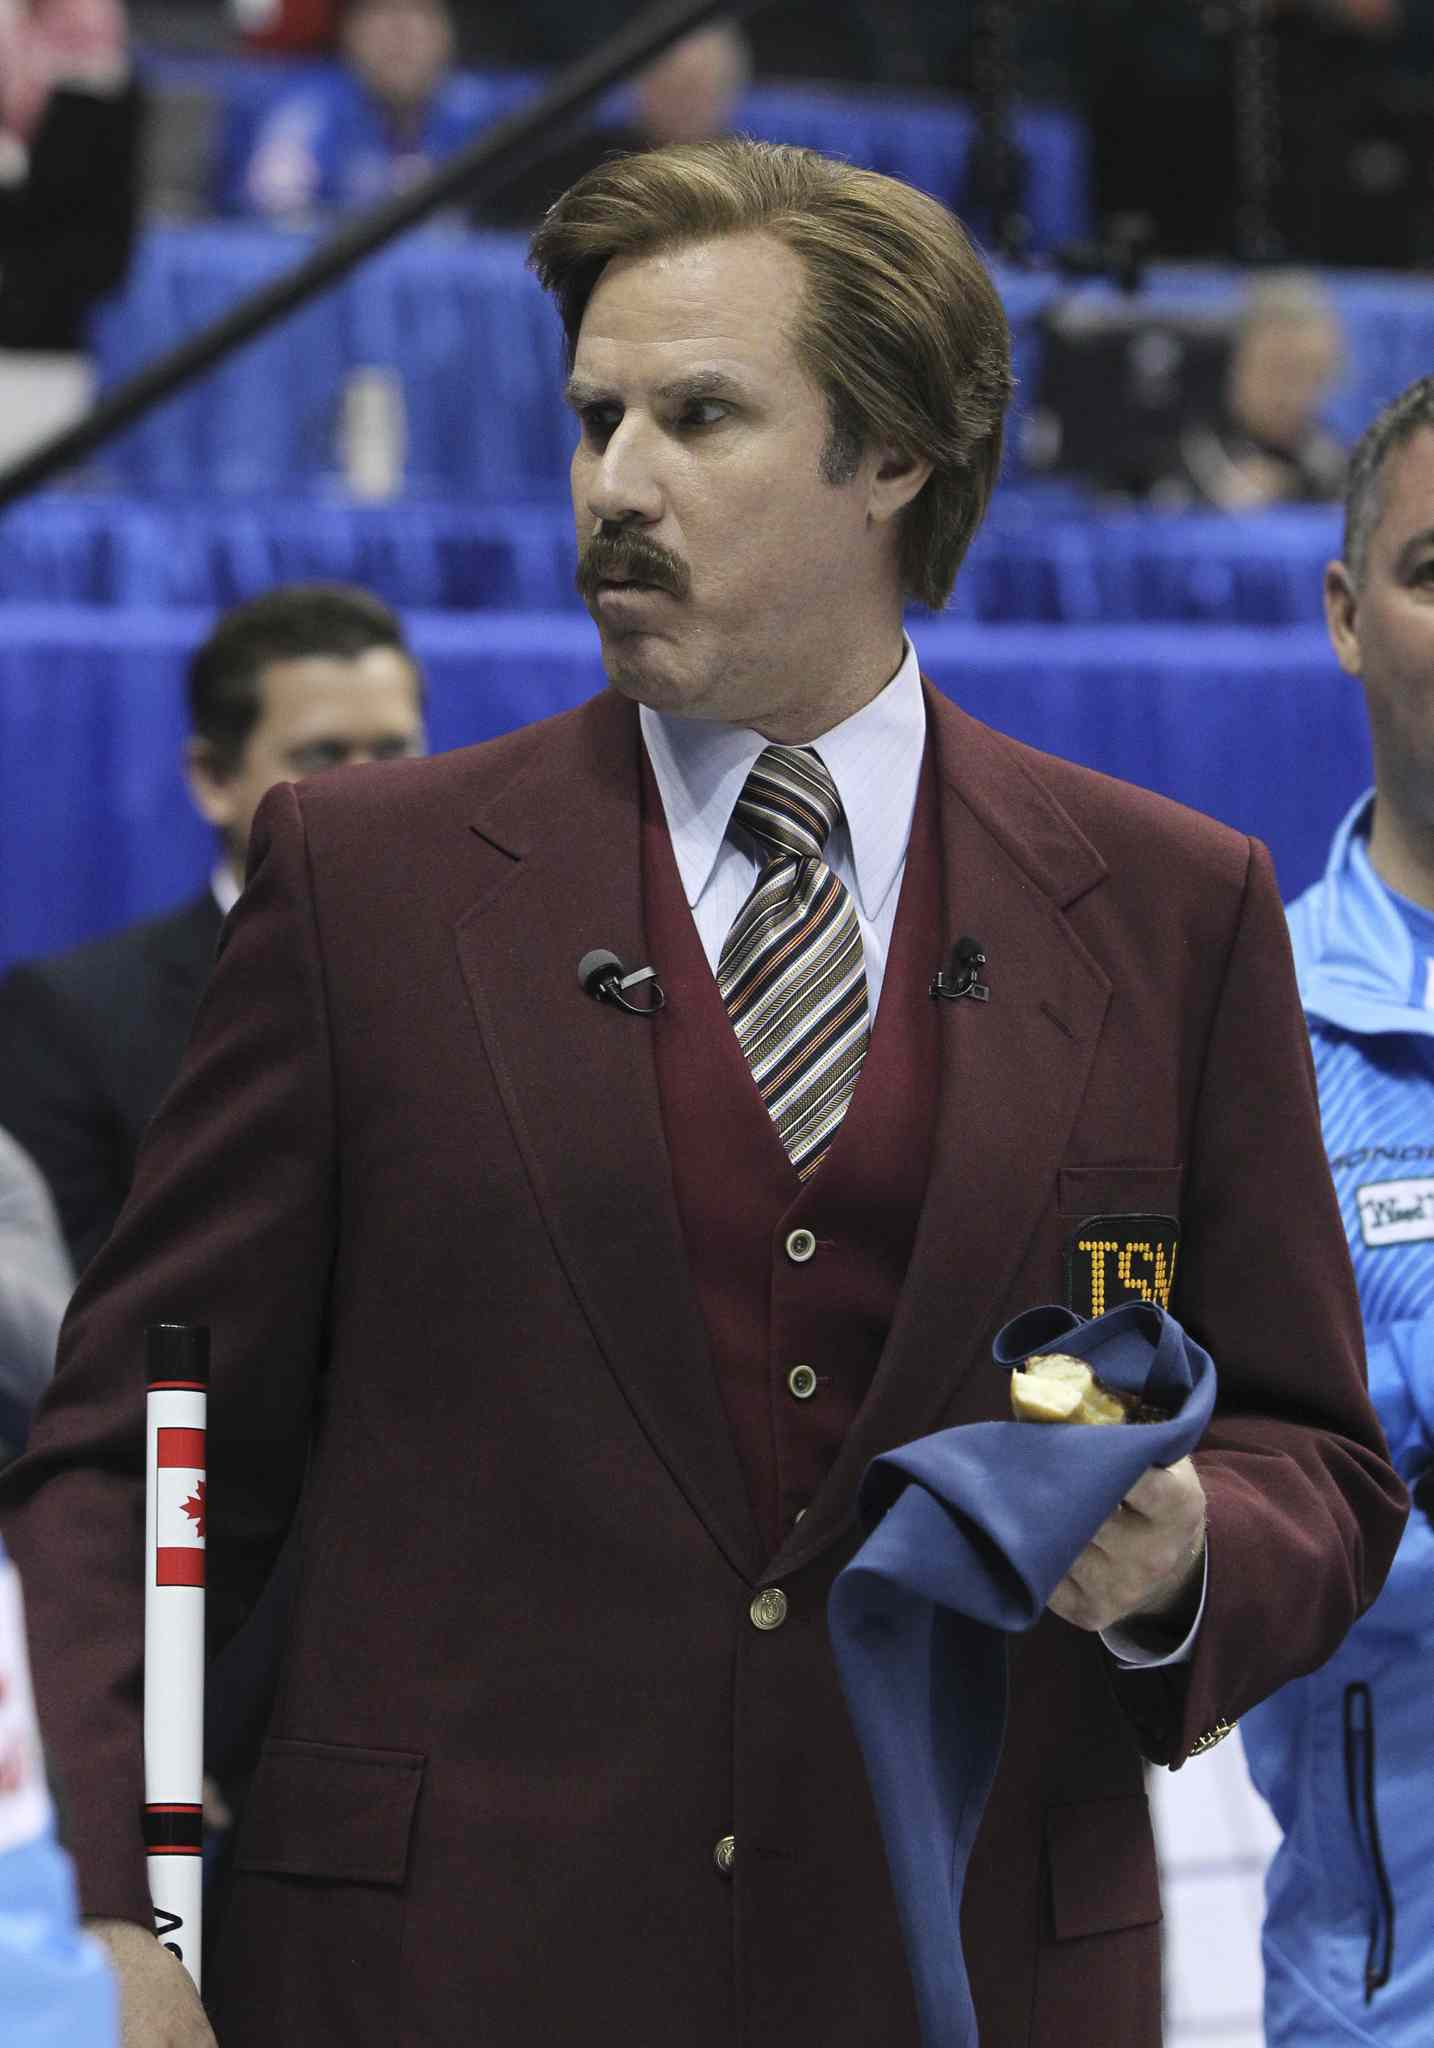 Ron Burgundy cradles a doughnut at Roar of the Rings.